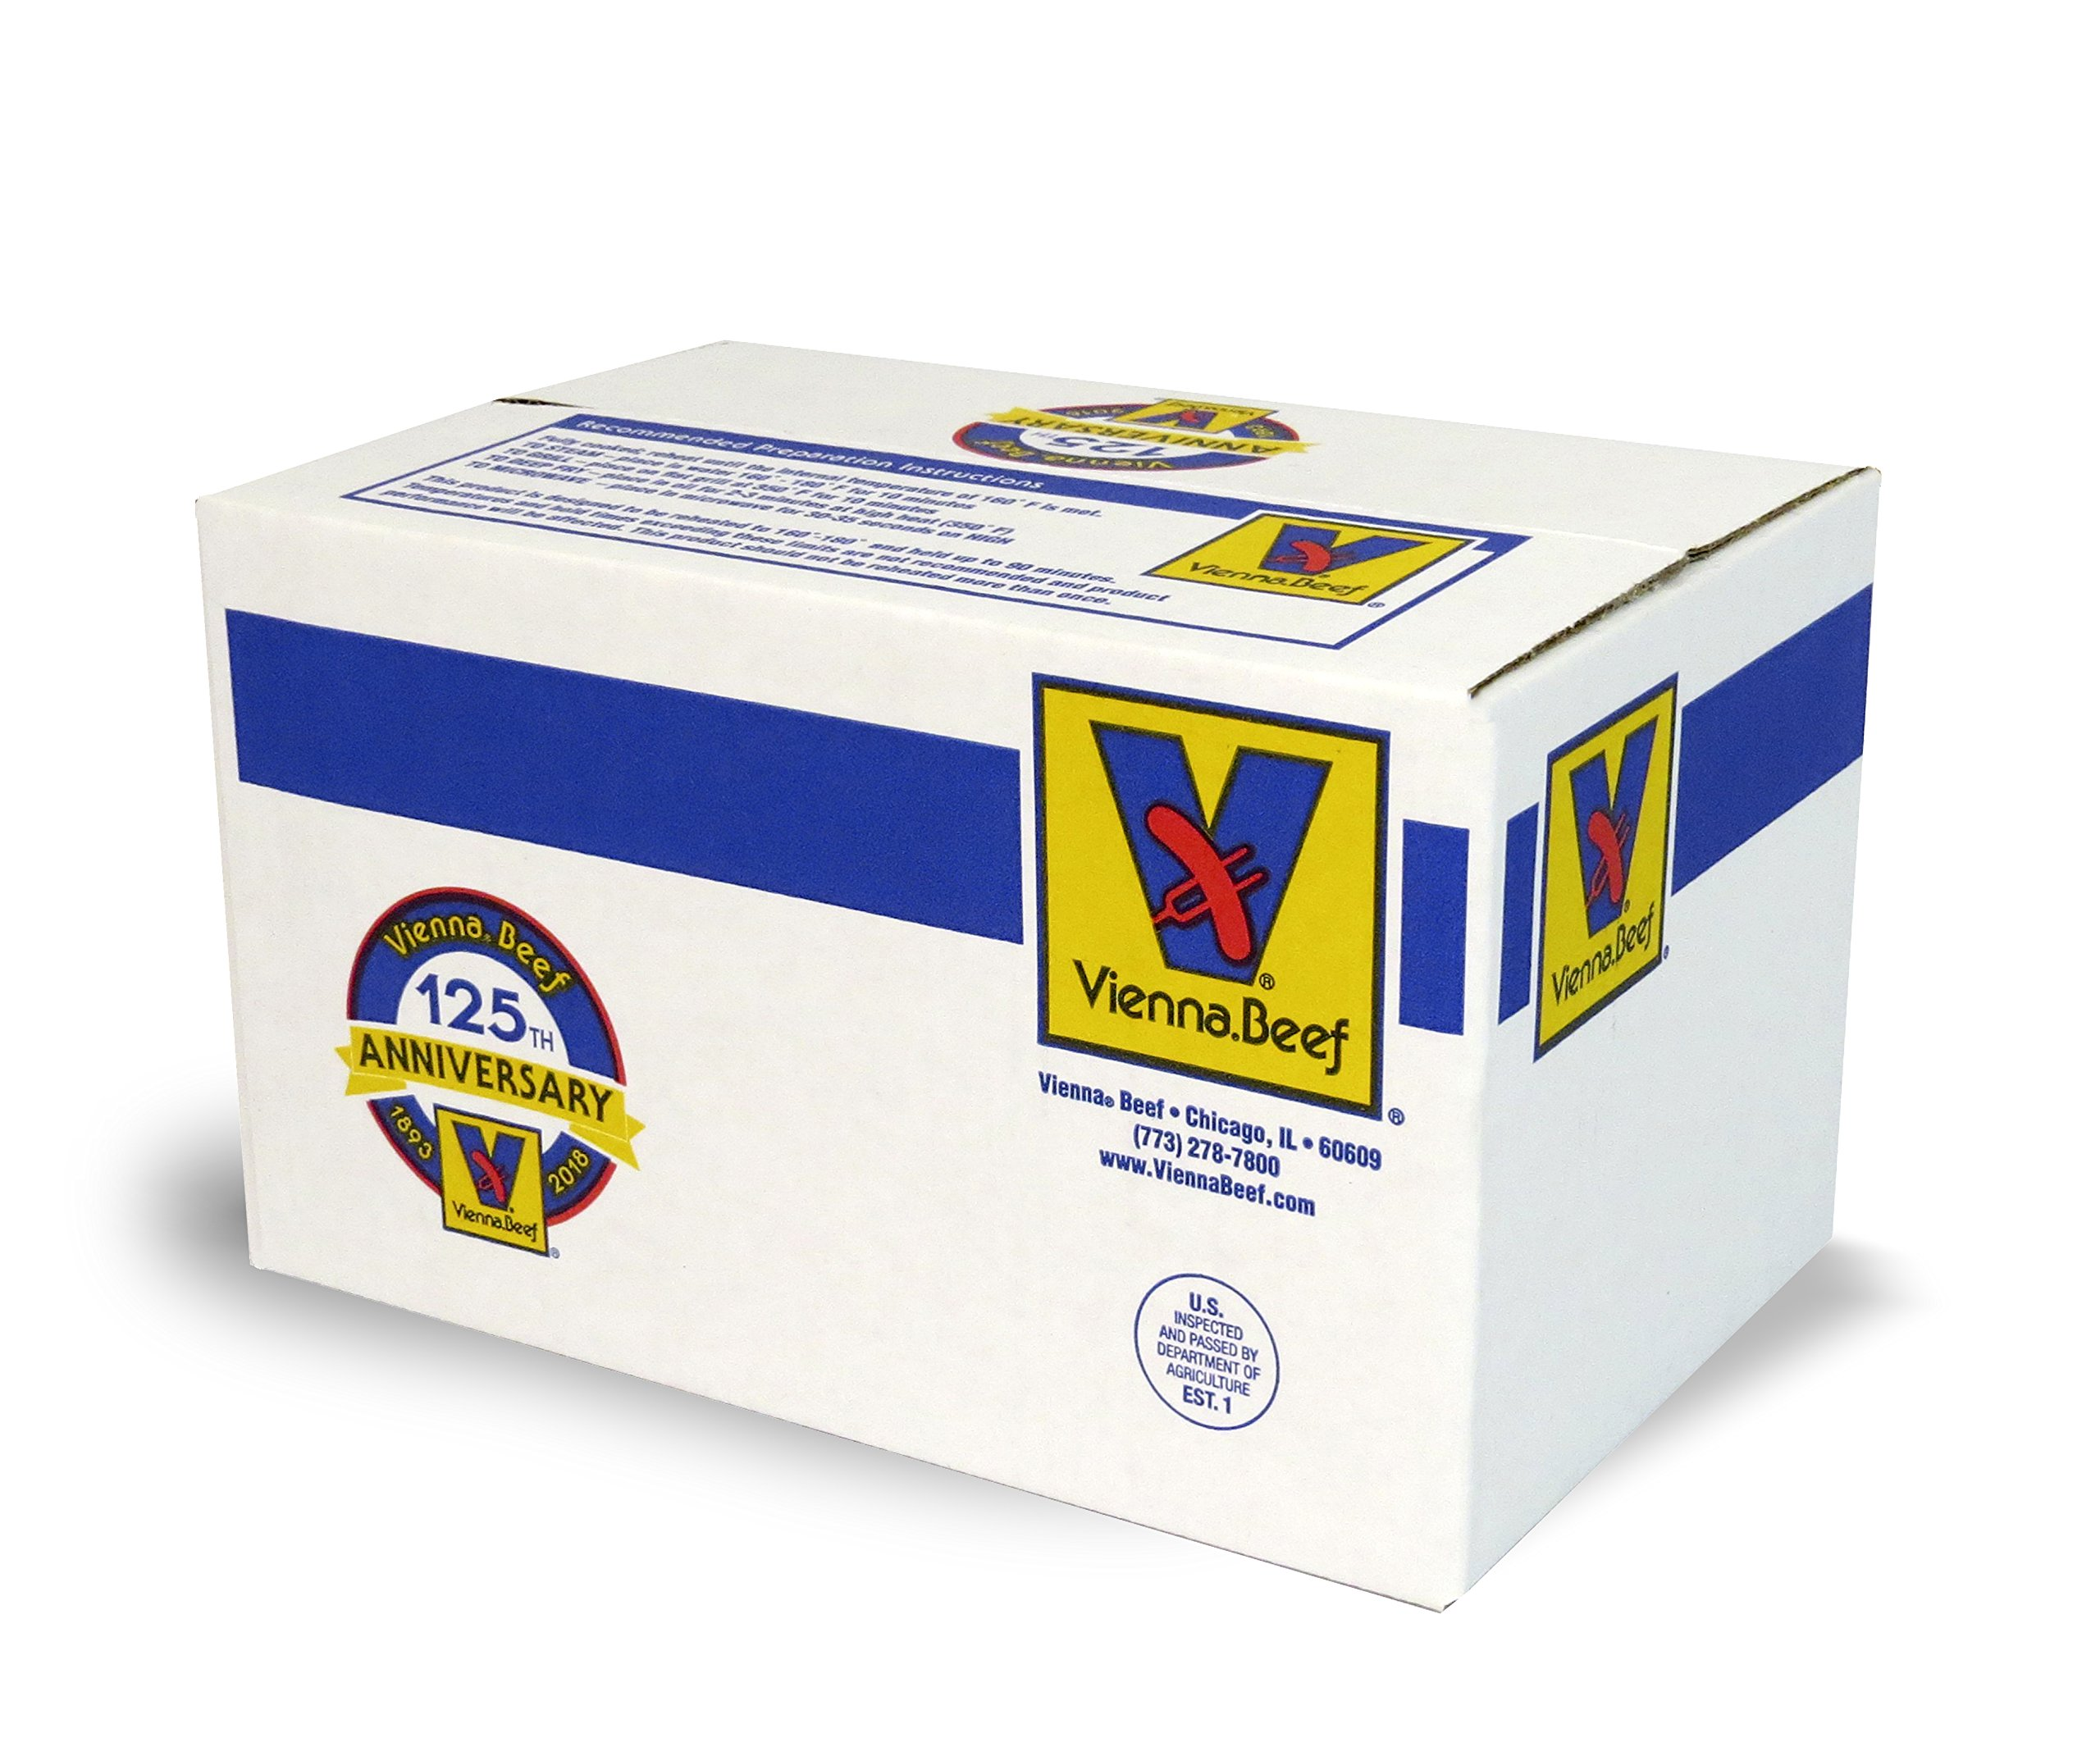 Vienna Beef Natural Casing Frankwurst Jumbo Franks 6'' 2:1 10 lbs. (Approximately 20 count)